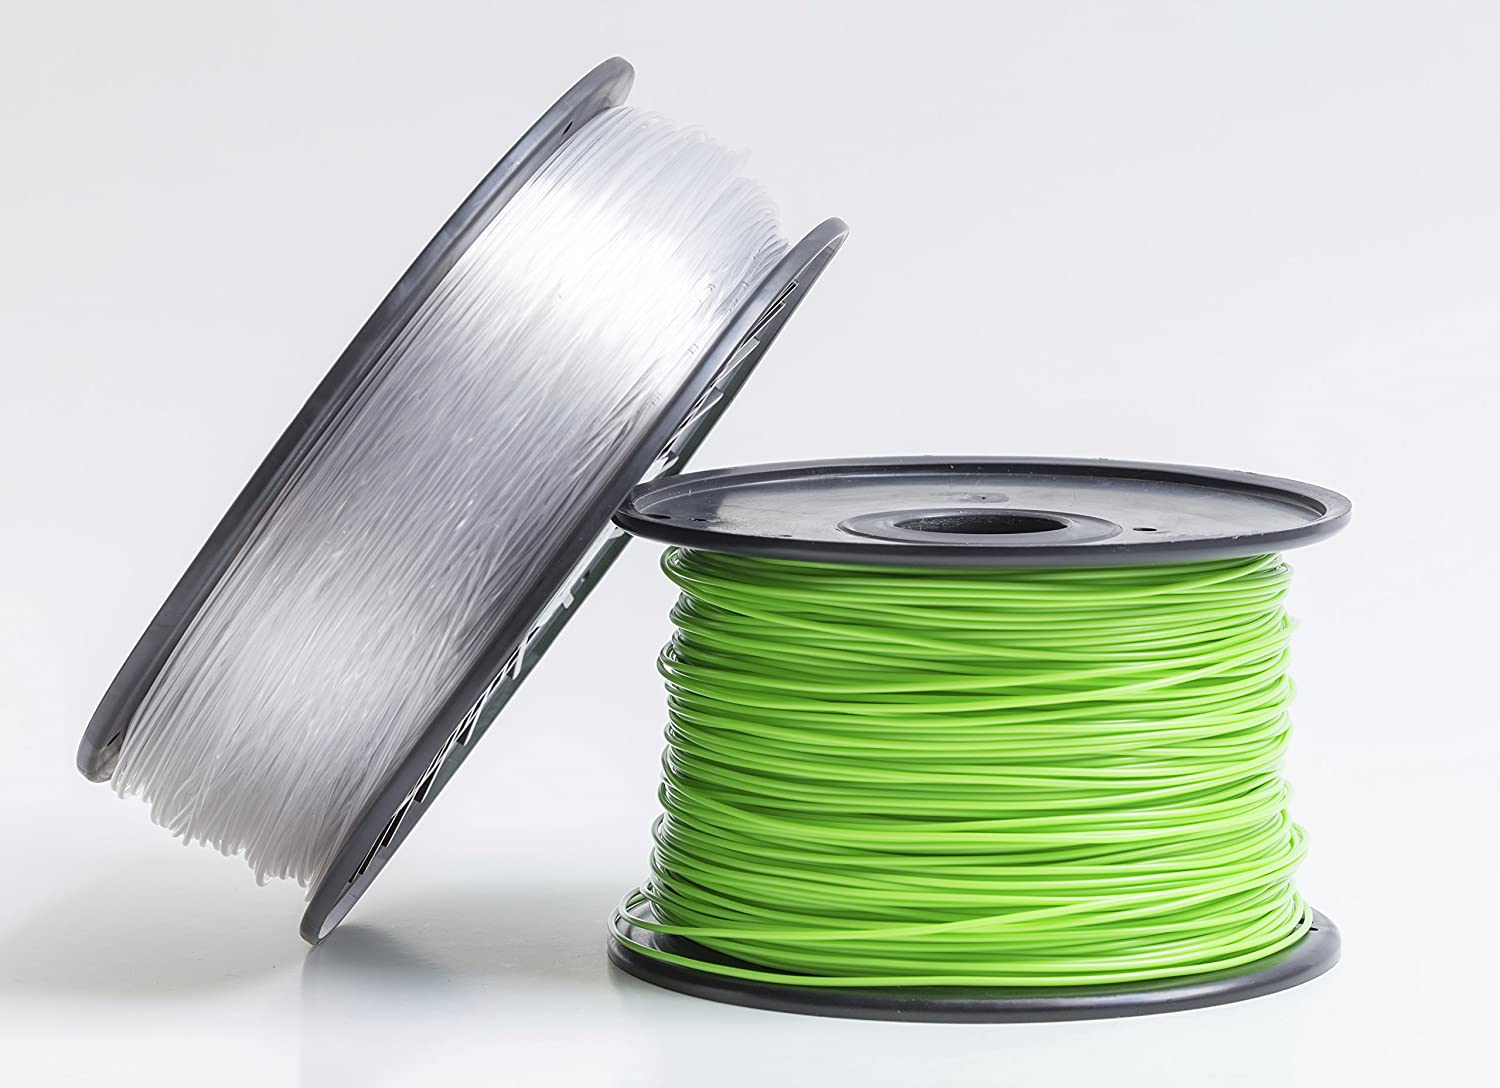 1.75mm PLA High Precision 3D Printing Filament 5 Metres 30+ Exact Colours 3D Pen // Printer Supplies 5 Metres, Black